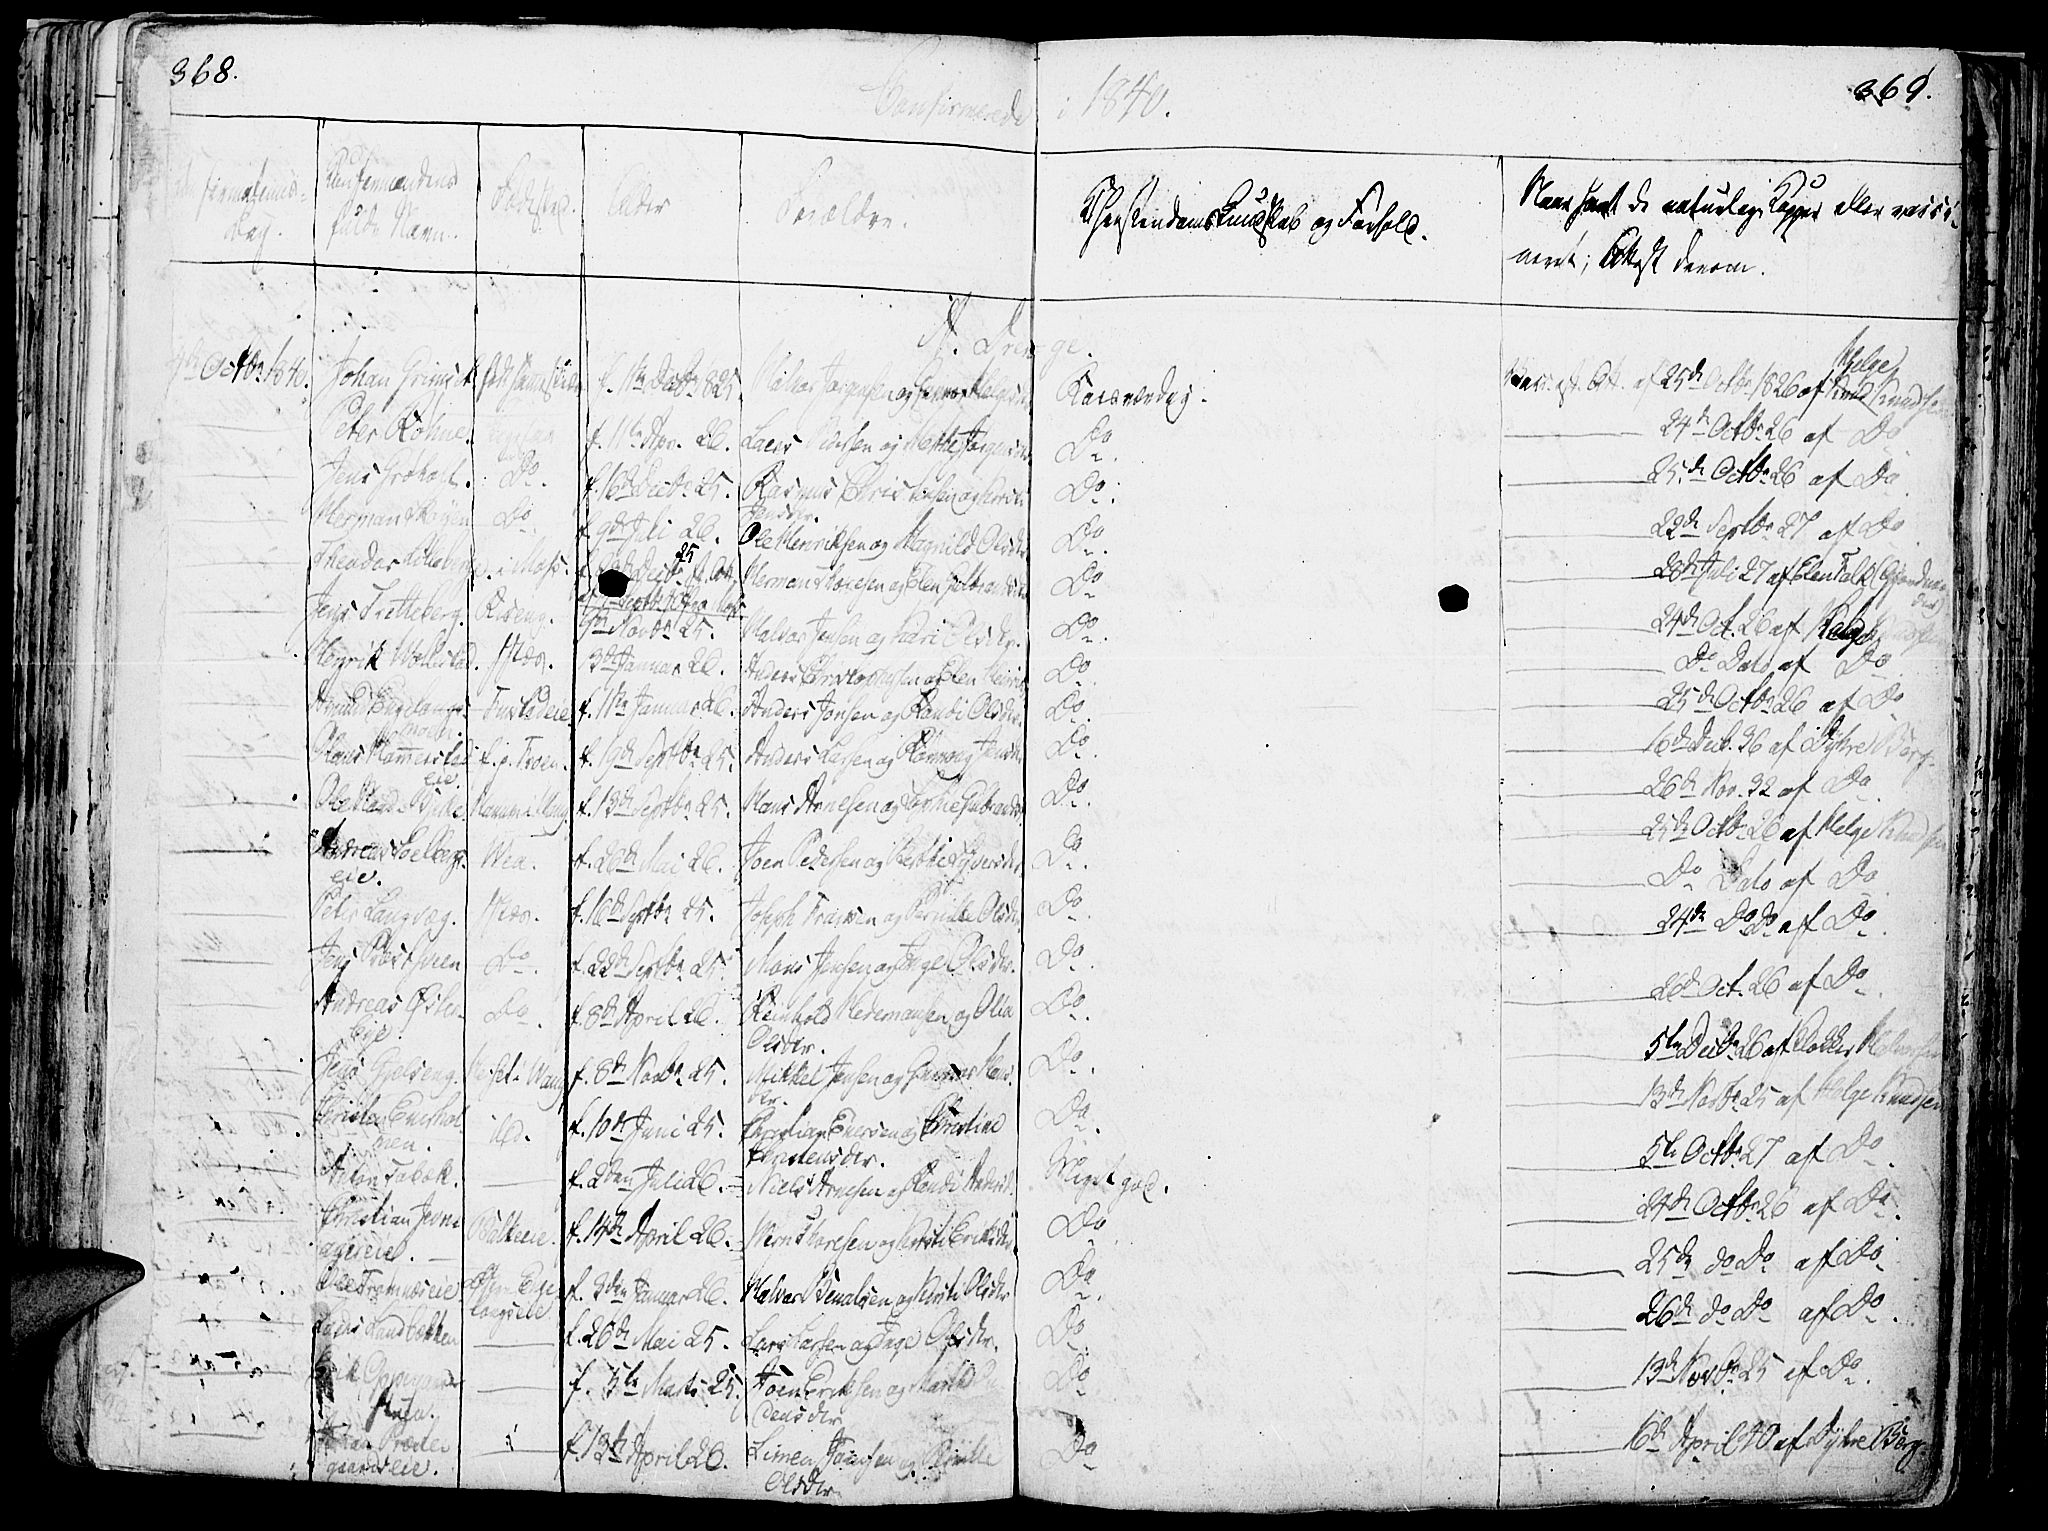 SAH, Løten prestekontor, K/Ka/L0006: Parish register (official) no. 6, 1832-1849, p. 368-369